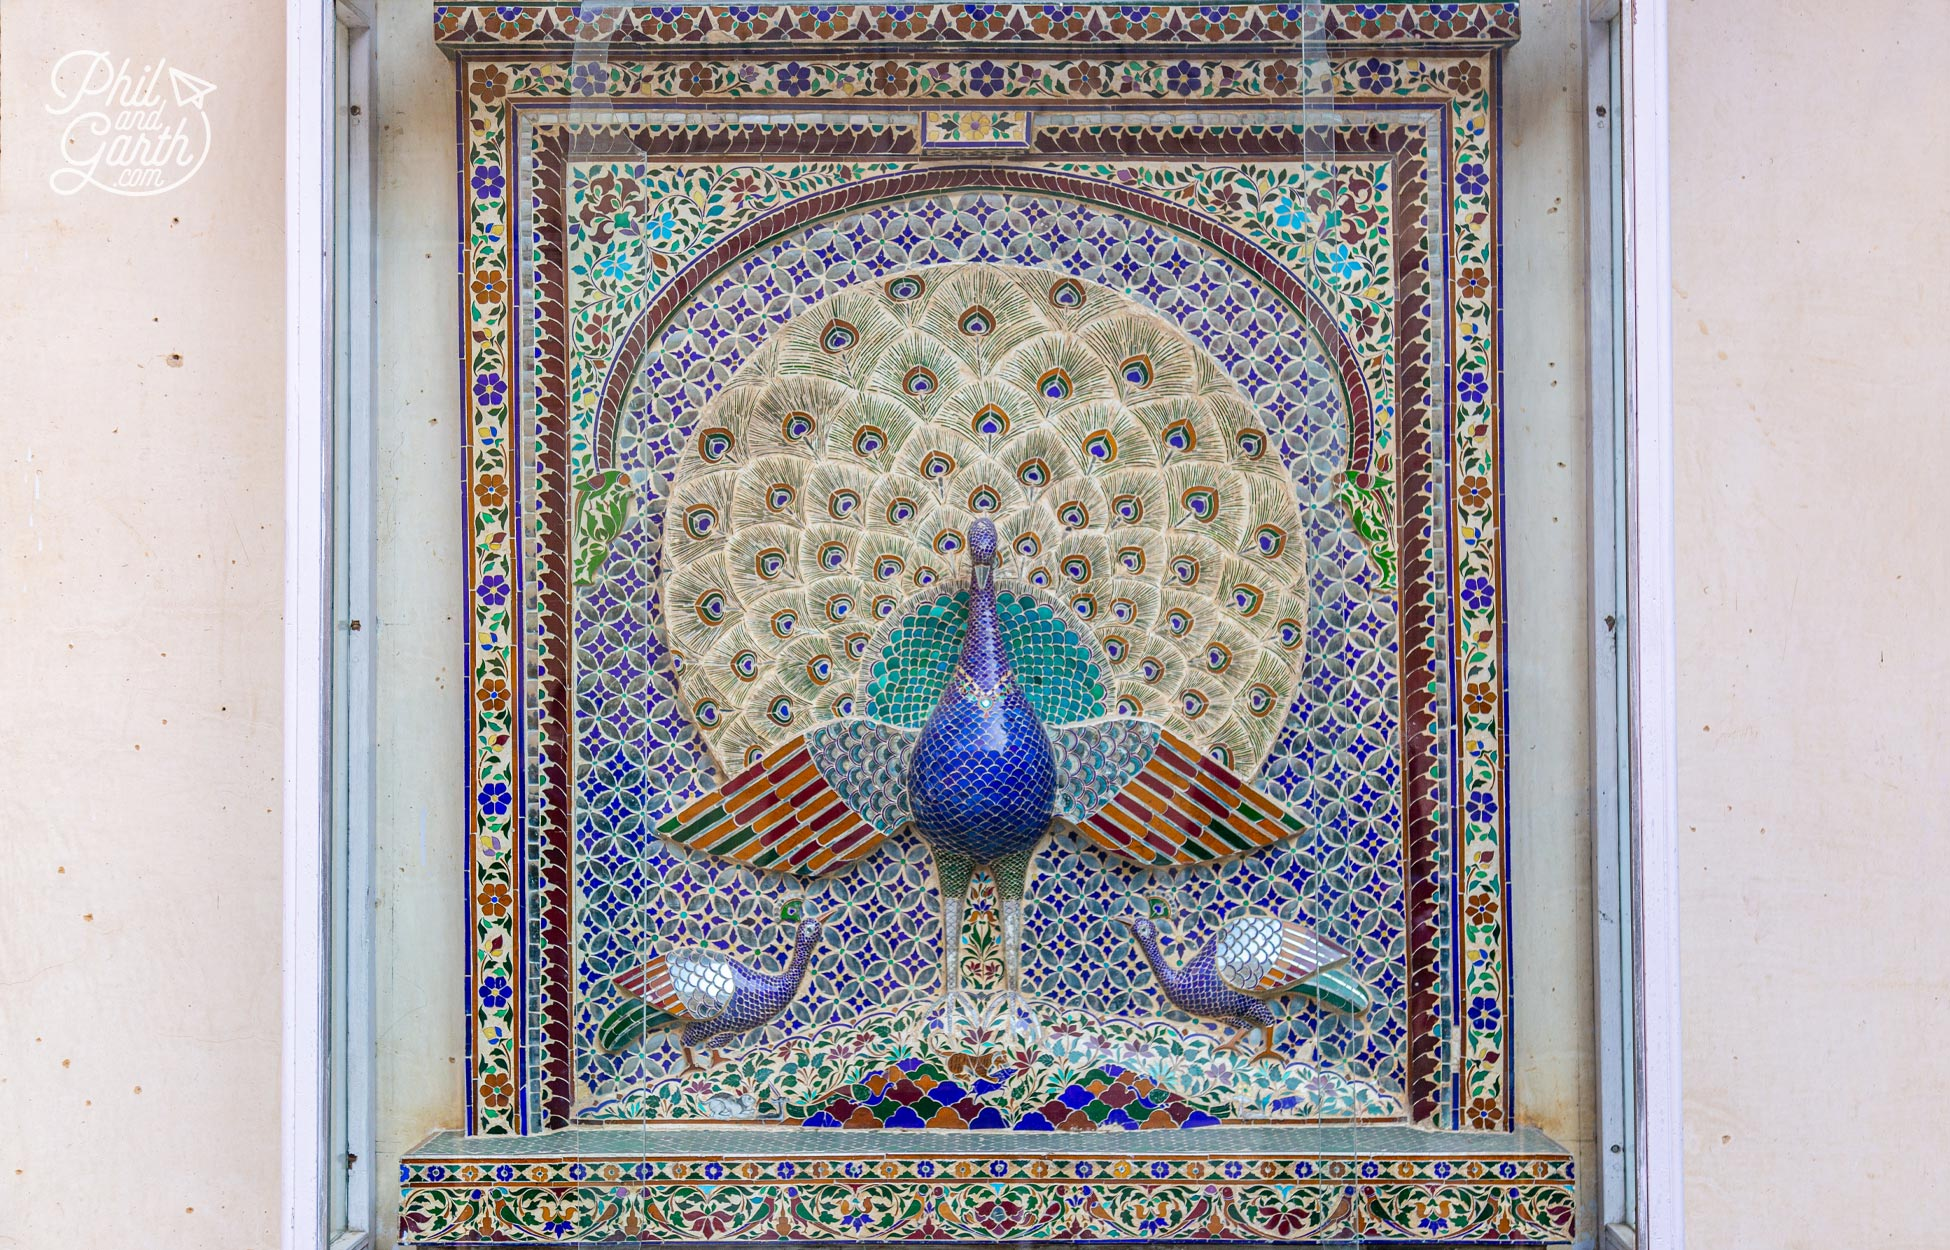 The highlight of Mor Chowk are 3 mosaic peacocks which represent summer, winter and the monsoon seasons